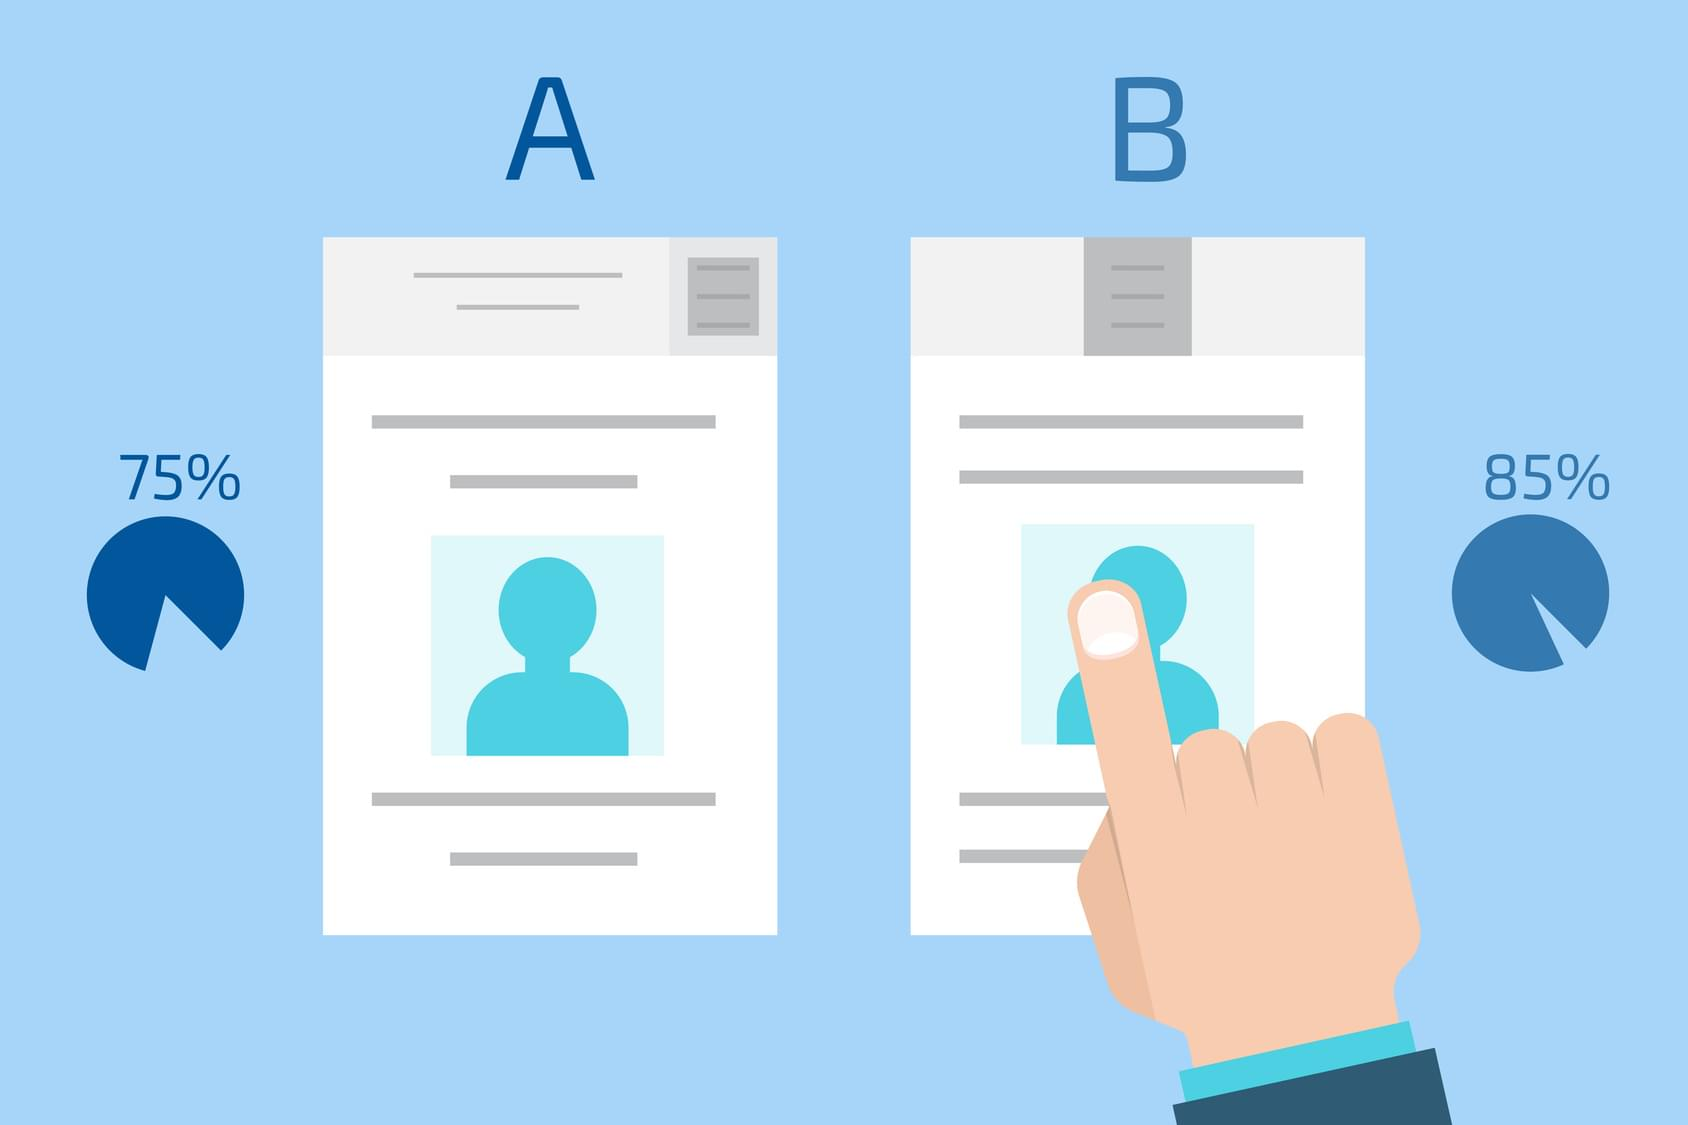 In this A/B test, 85% of site visitors chose version B of a webpage